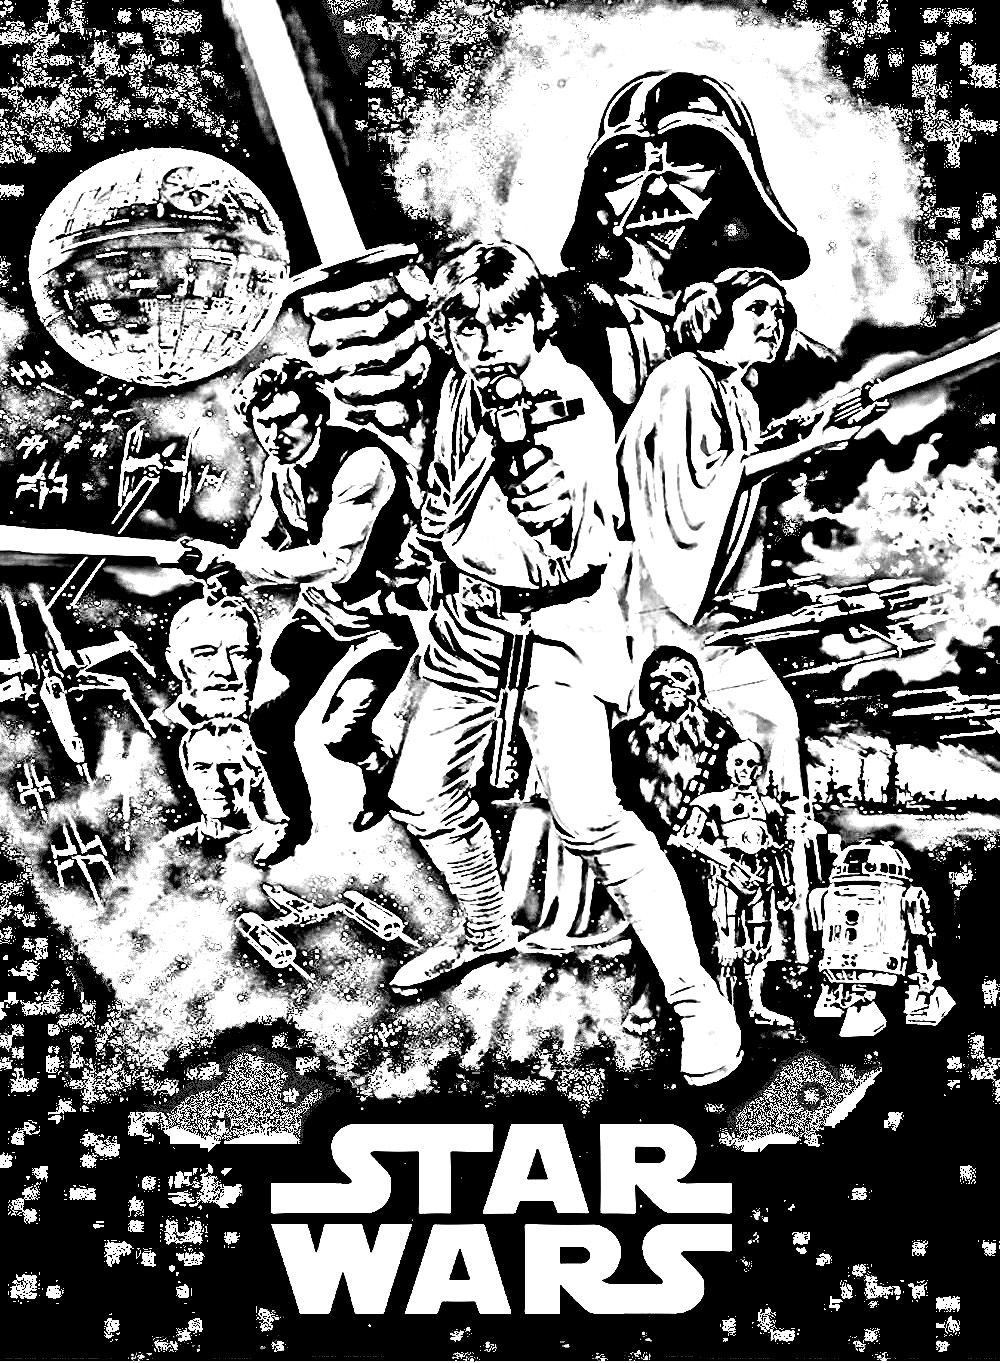 colouring pages for adults star wars colouring pages for adults star wars for adults colouring pages wars star